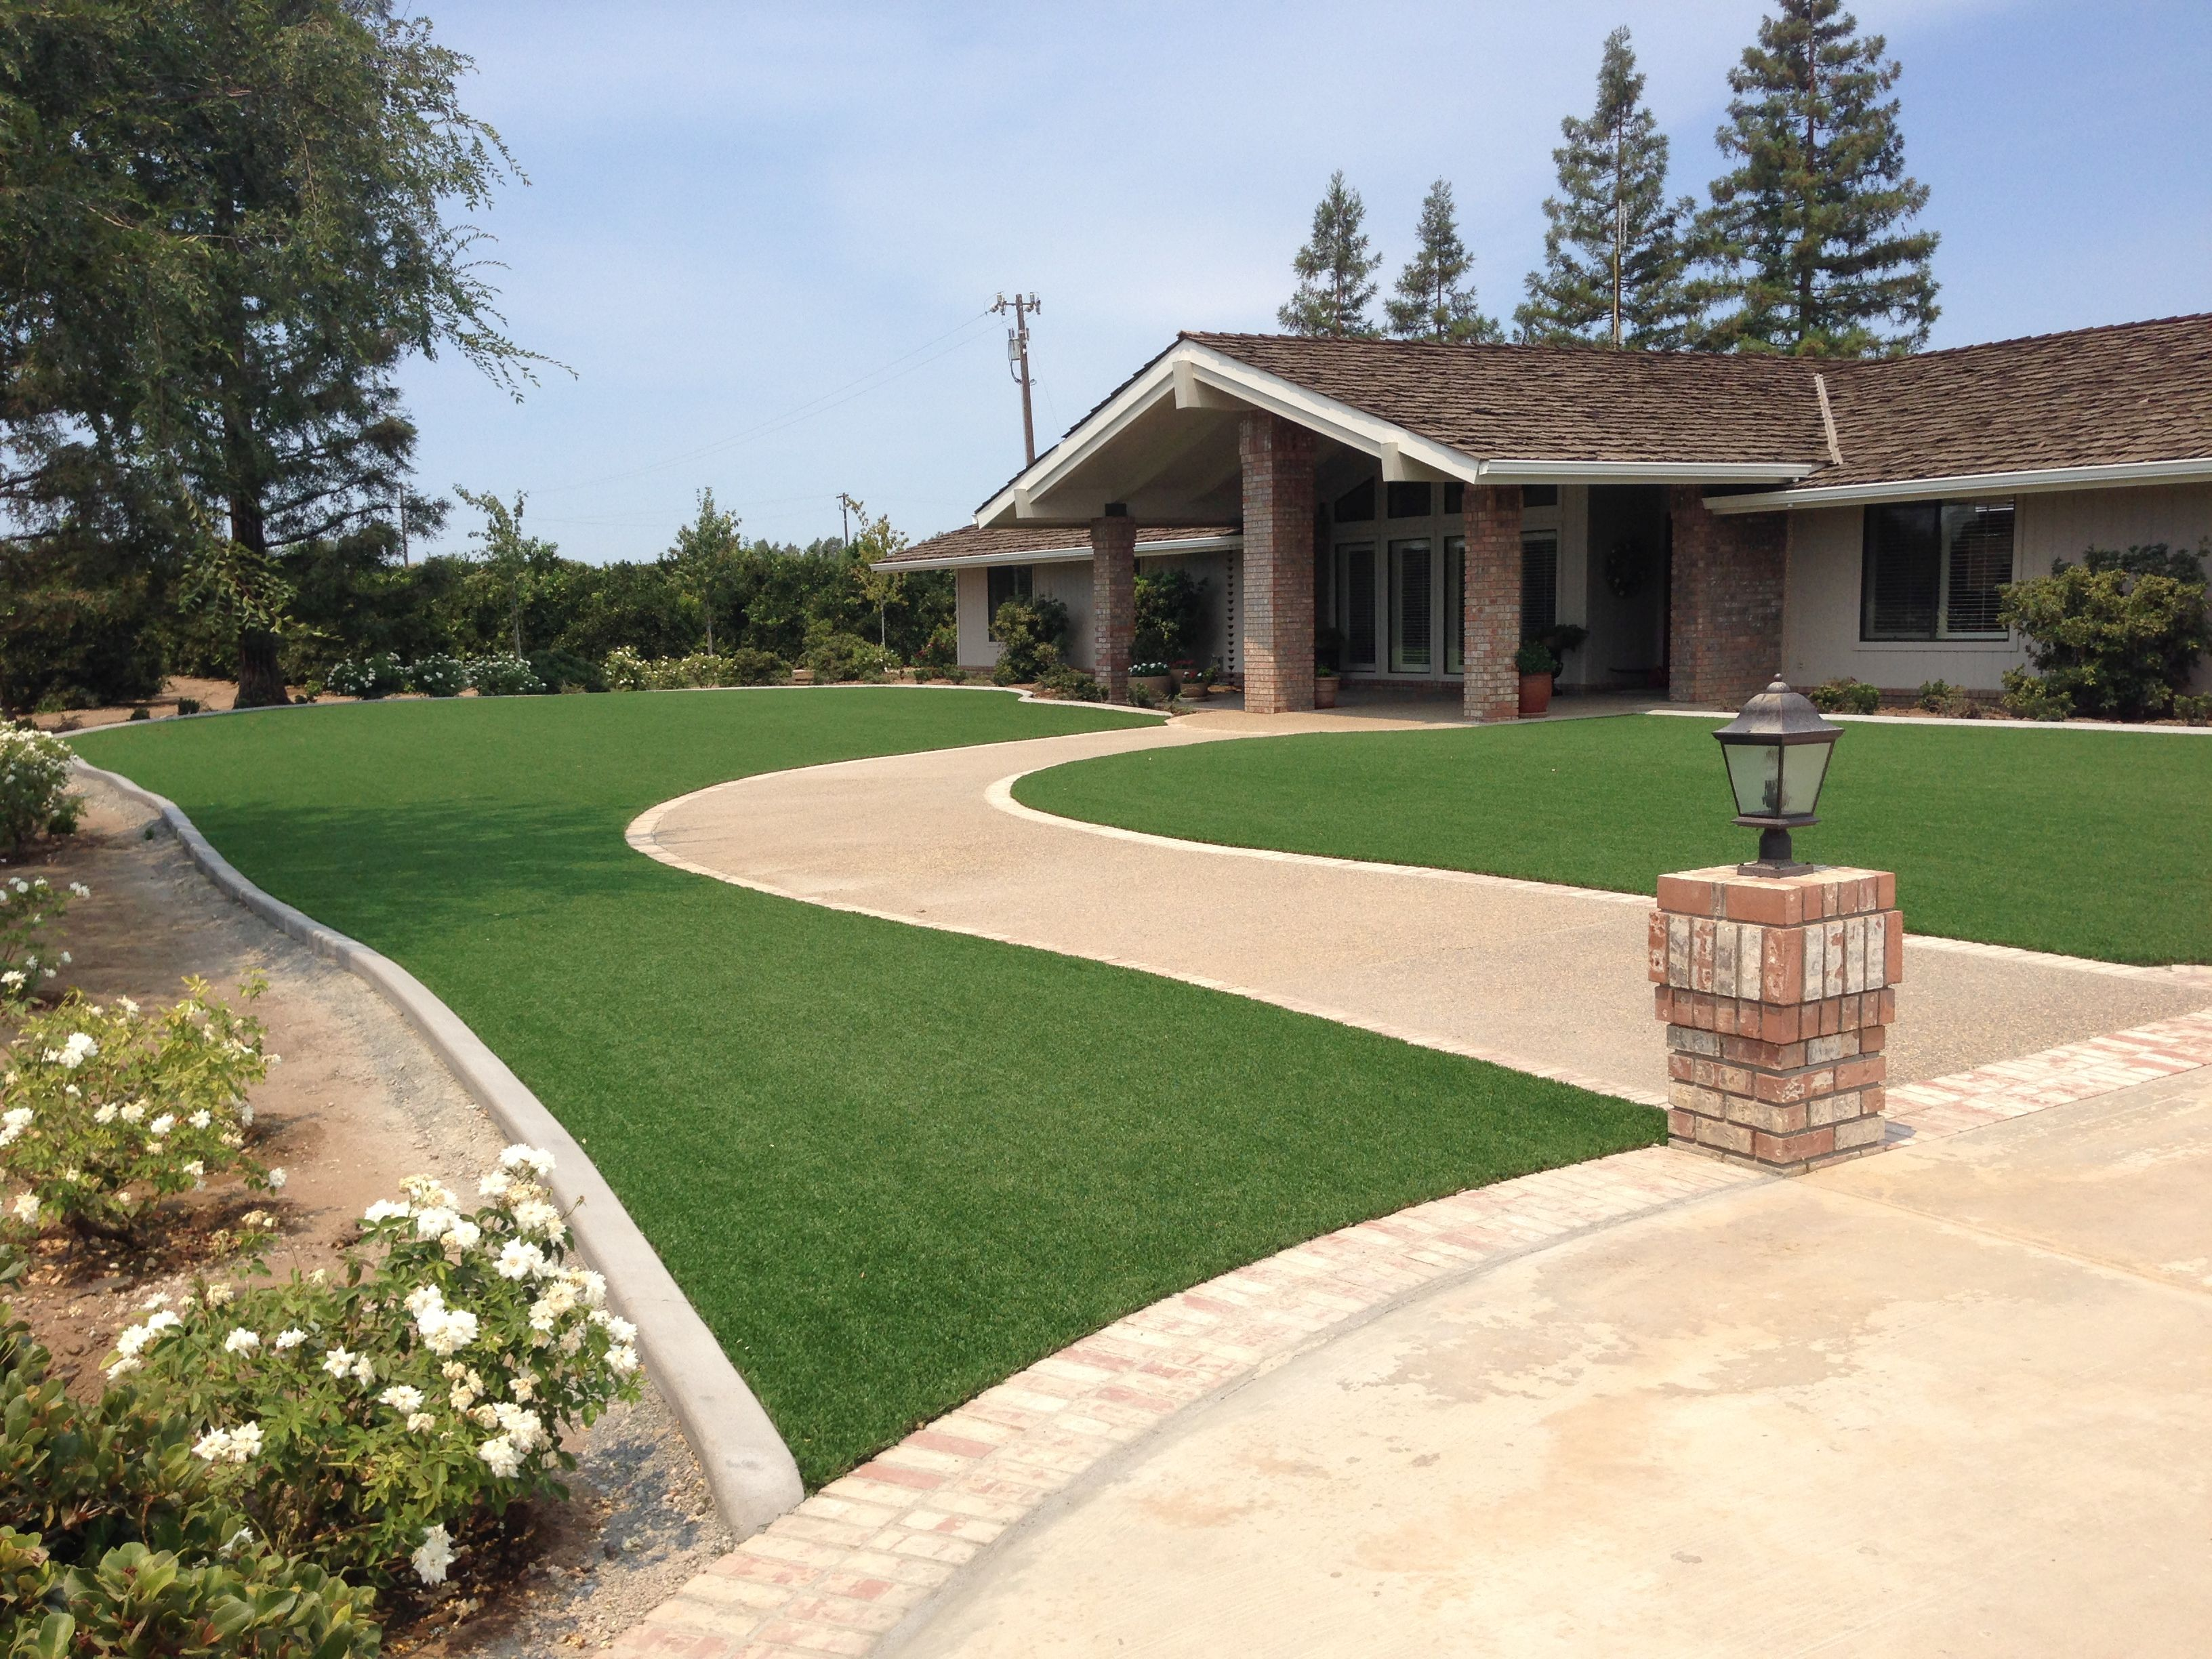 7 landscape edging ideas for artificial grass lawns for Garden design ideas artificial grass